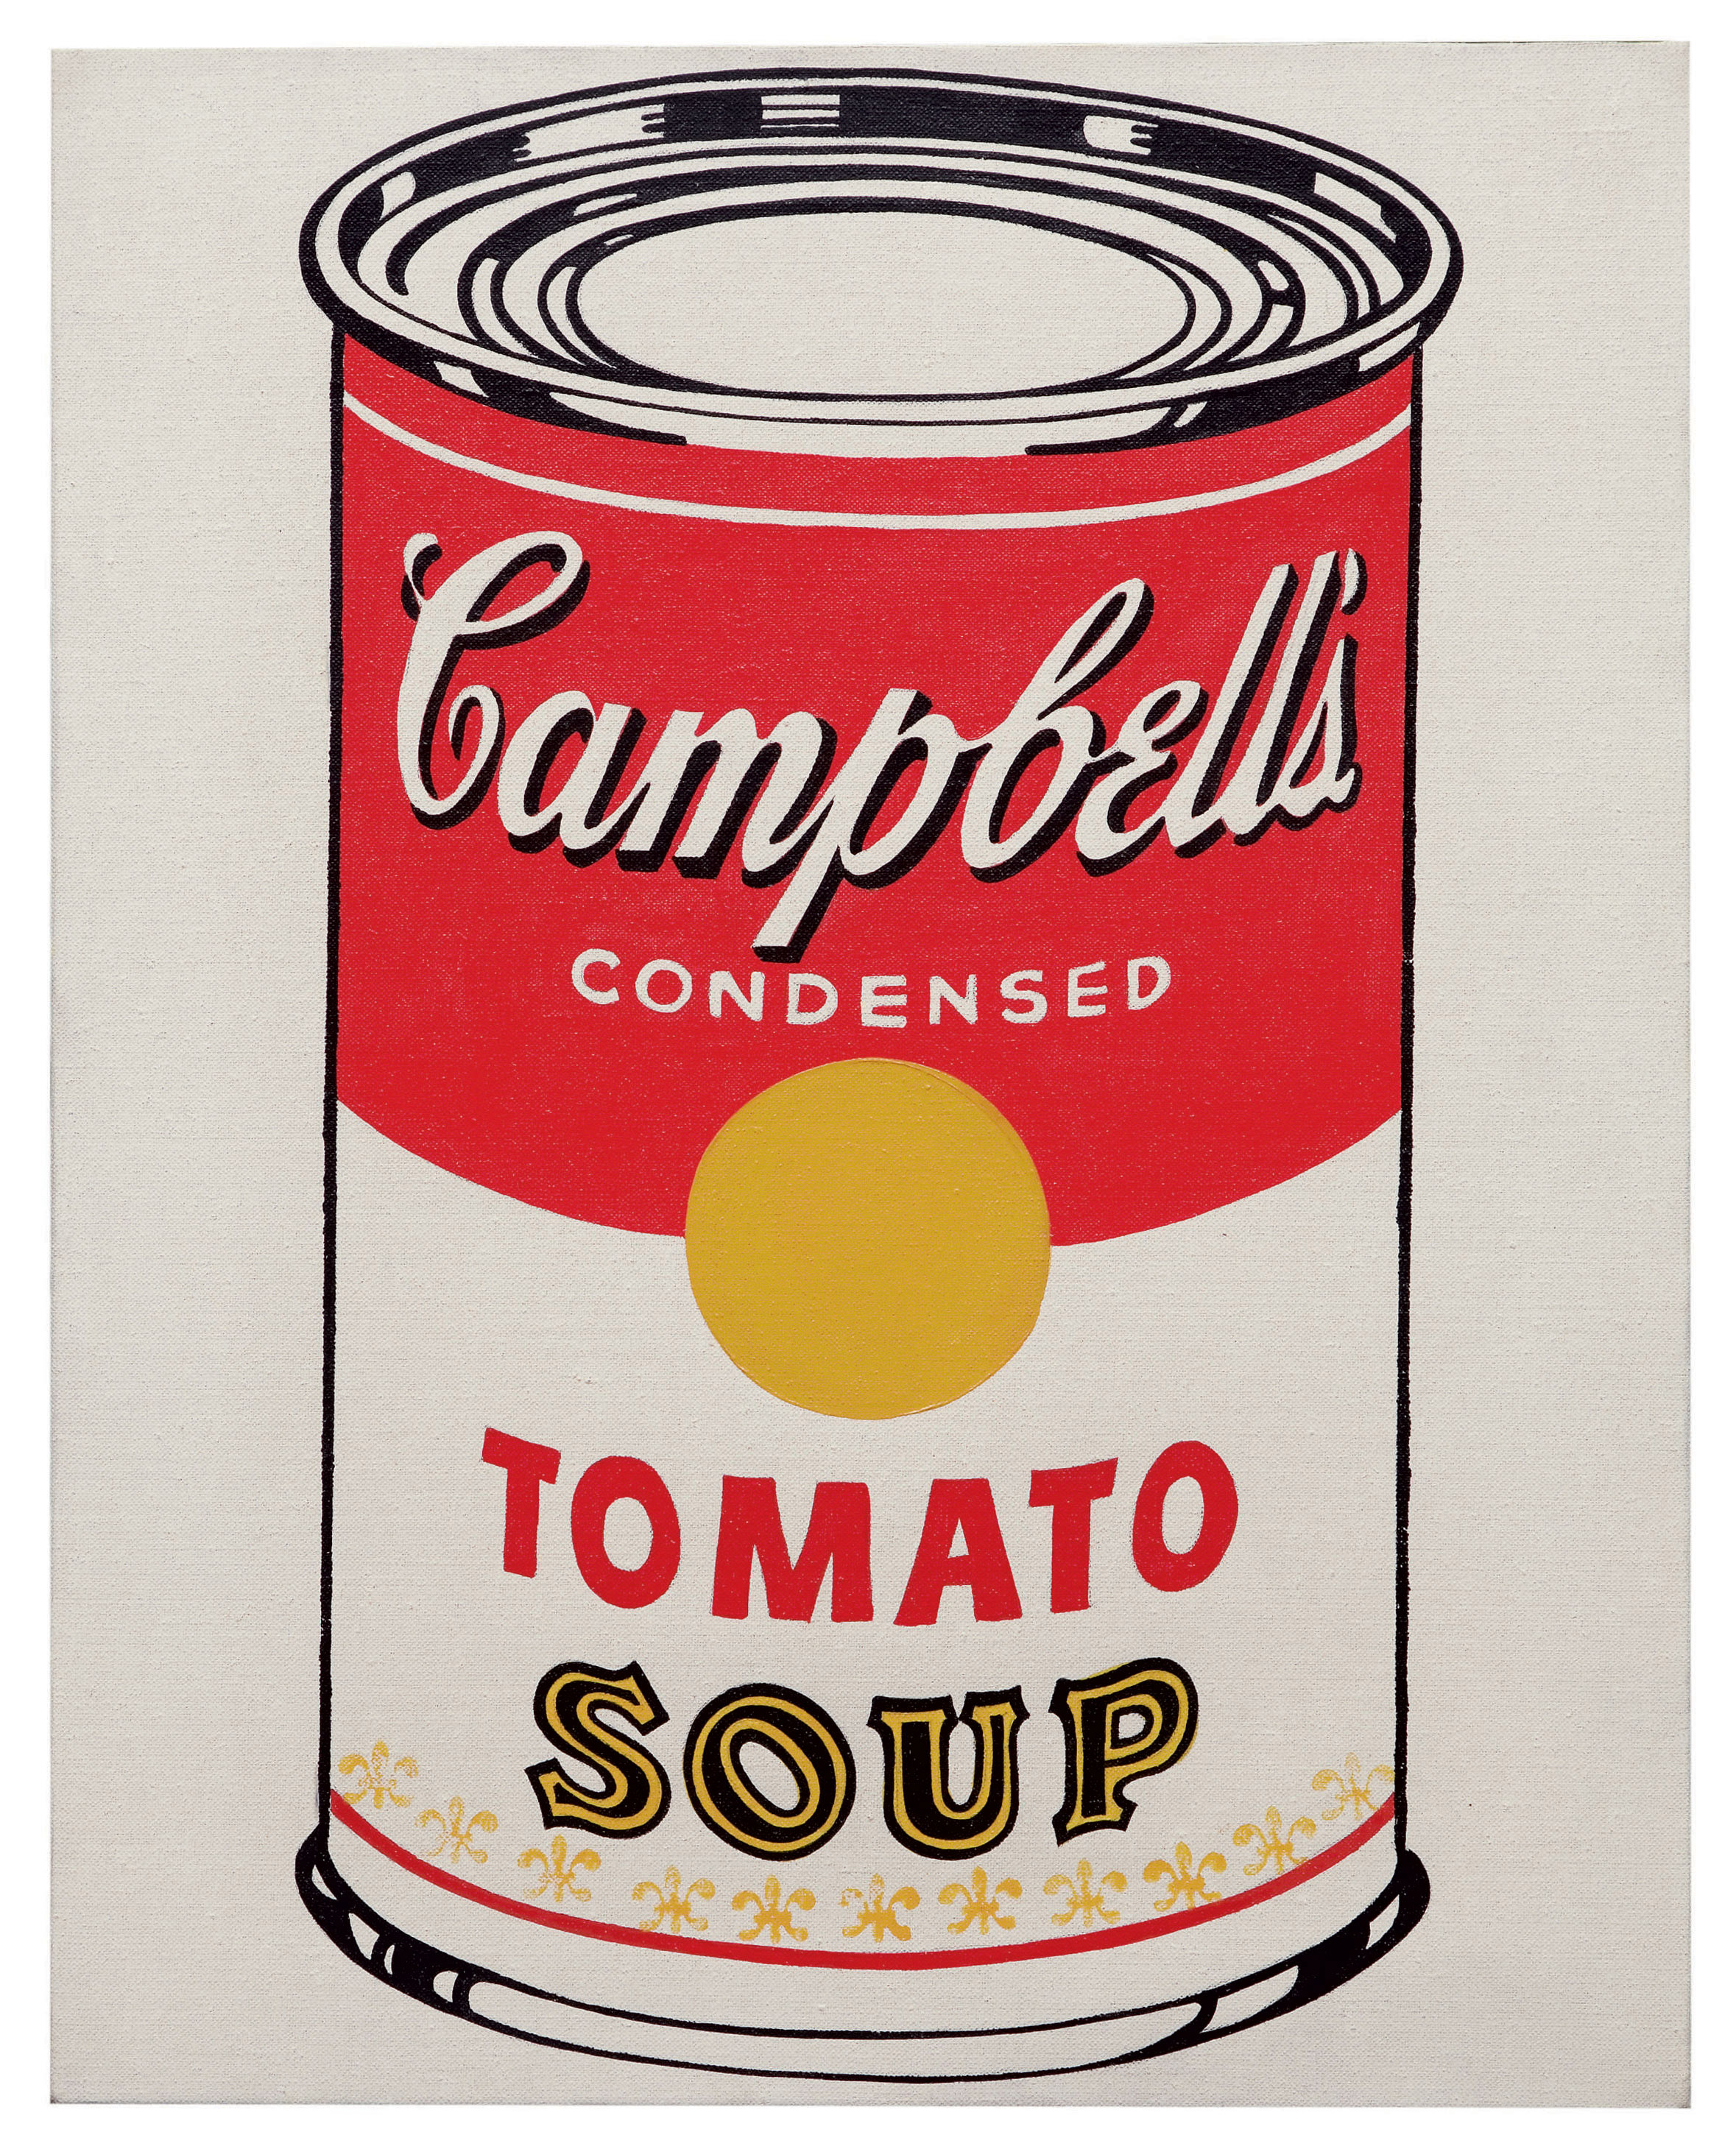 Image result for the campbell soup andy warhol